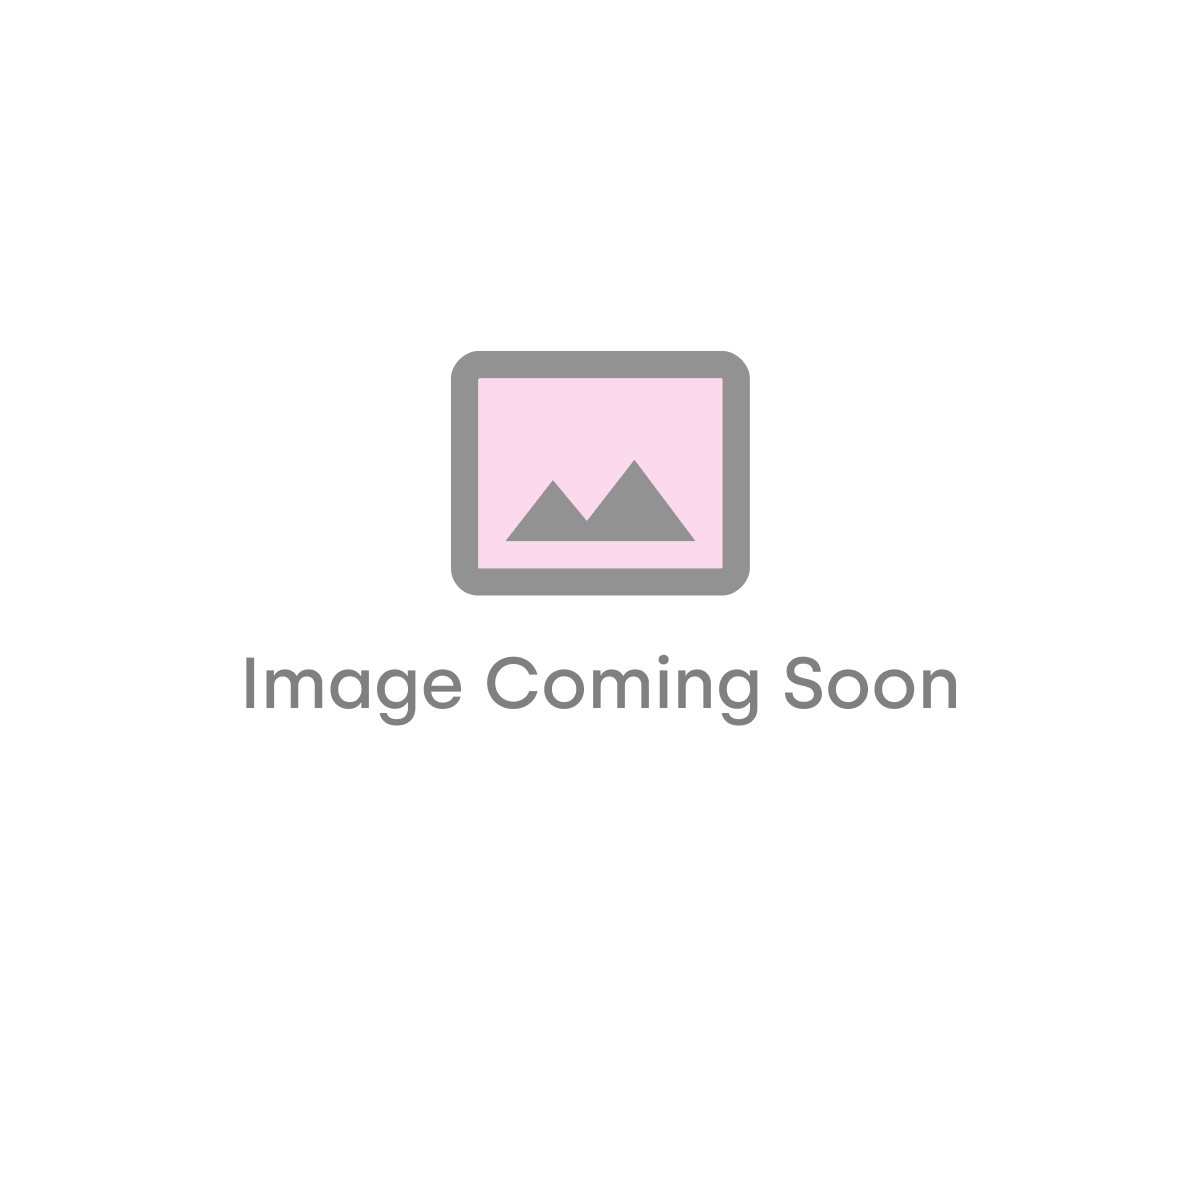 Minuto 400mm Floorstanding Cloakroom Vanity Unit & Basin - Brown Grey Avola (19259)